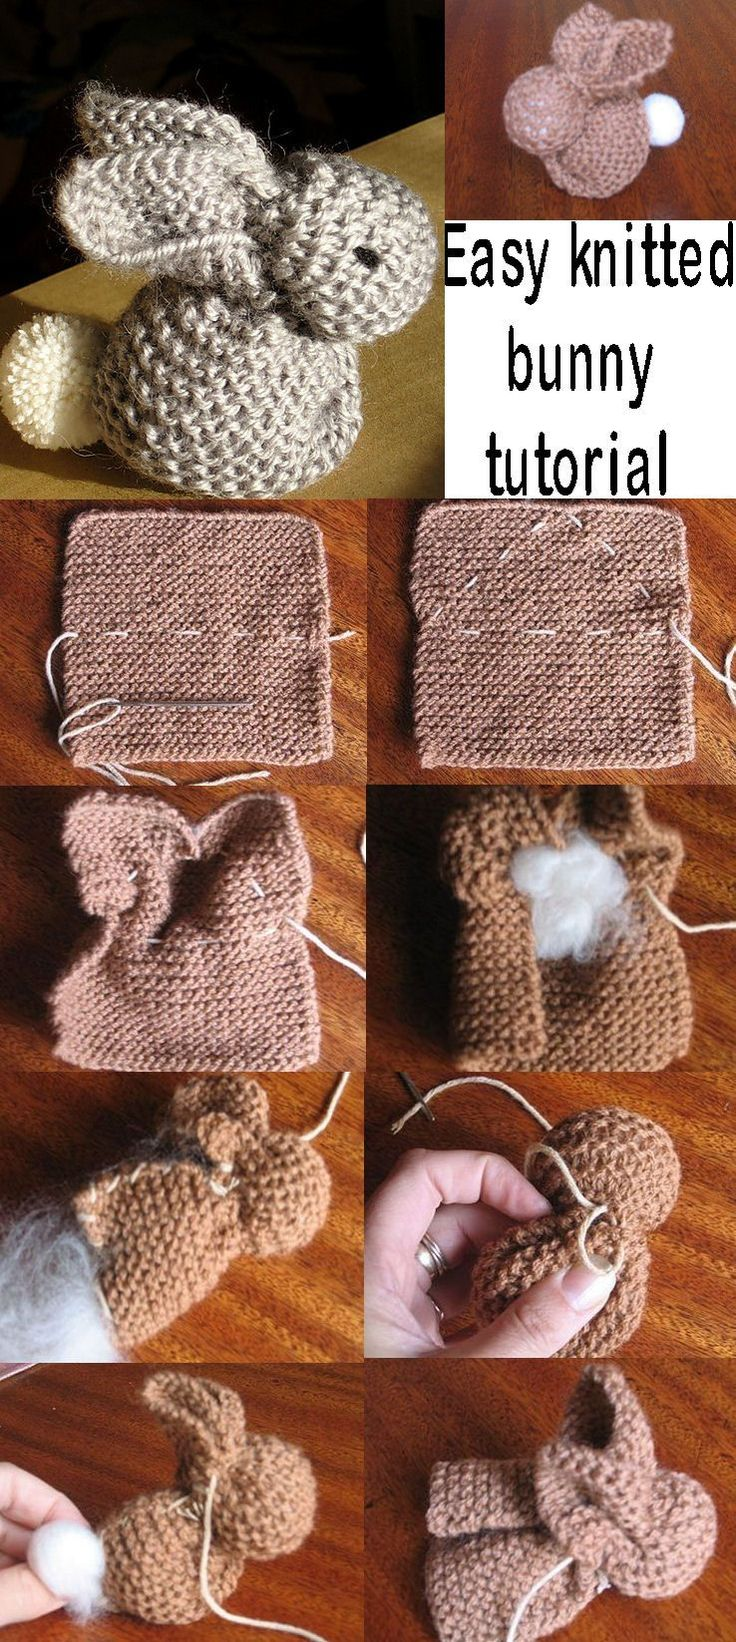 Easy Knitting Ideas Pinterest : B aed d a adef e c g  pixels